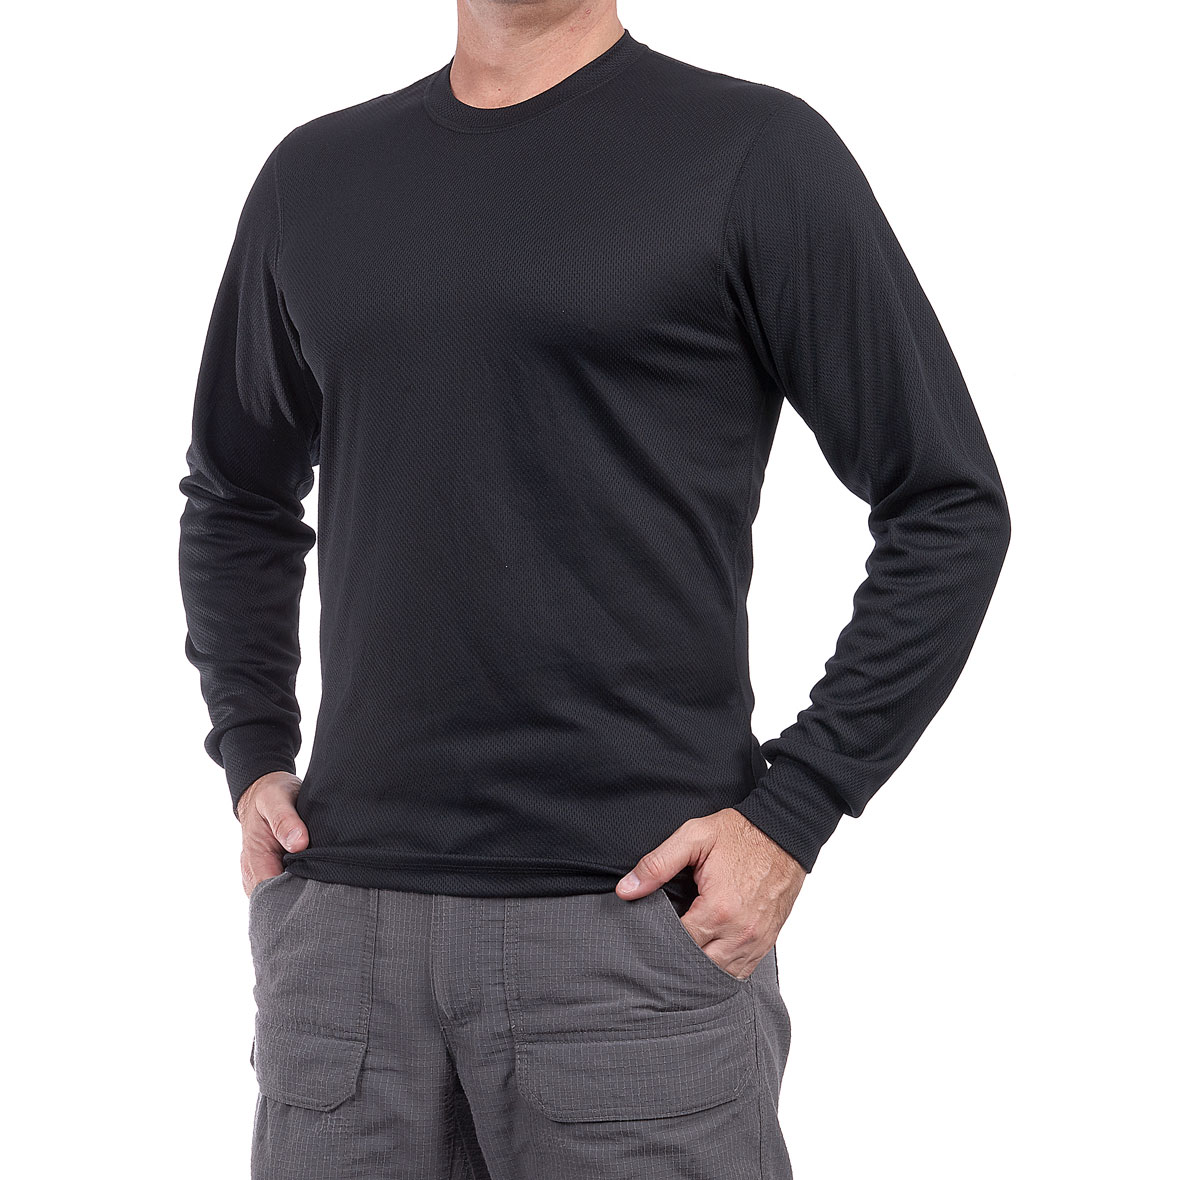 MG 8630 5CS20041010M Camiseta Thermal Negro - Camiseta Thermal